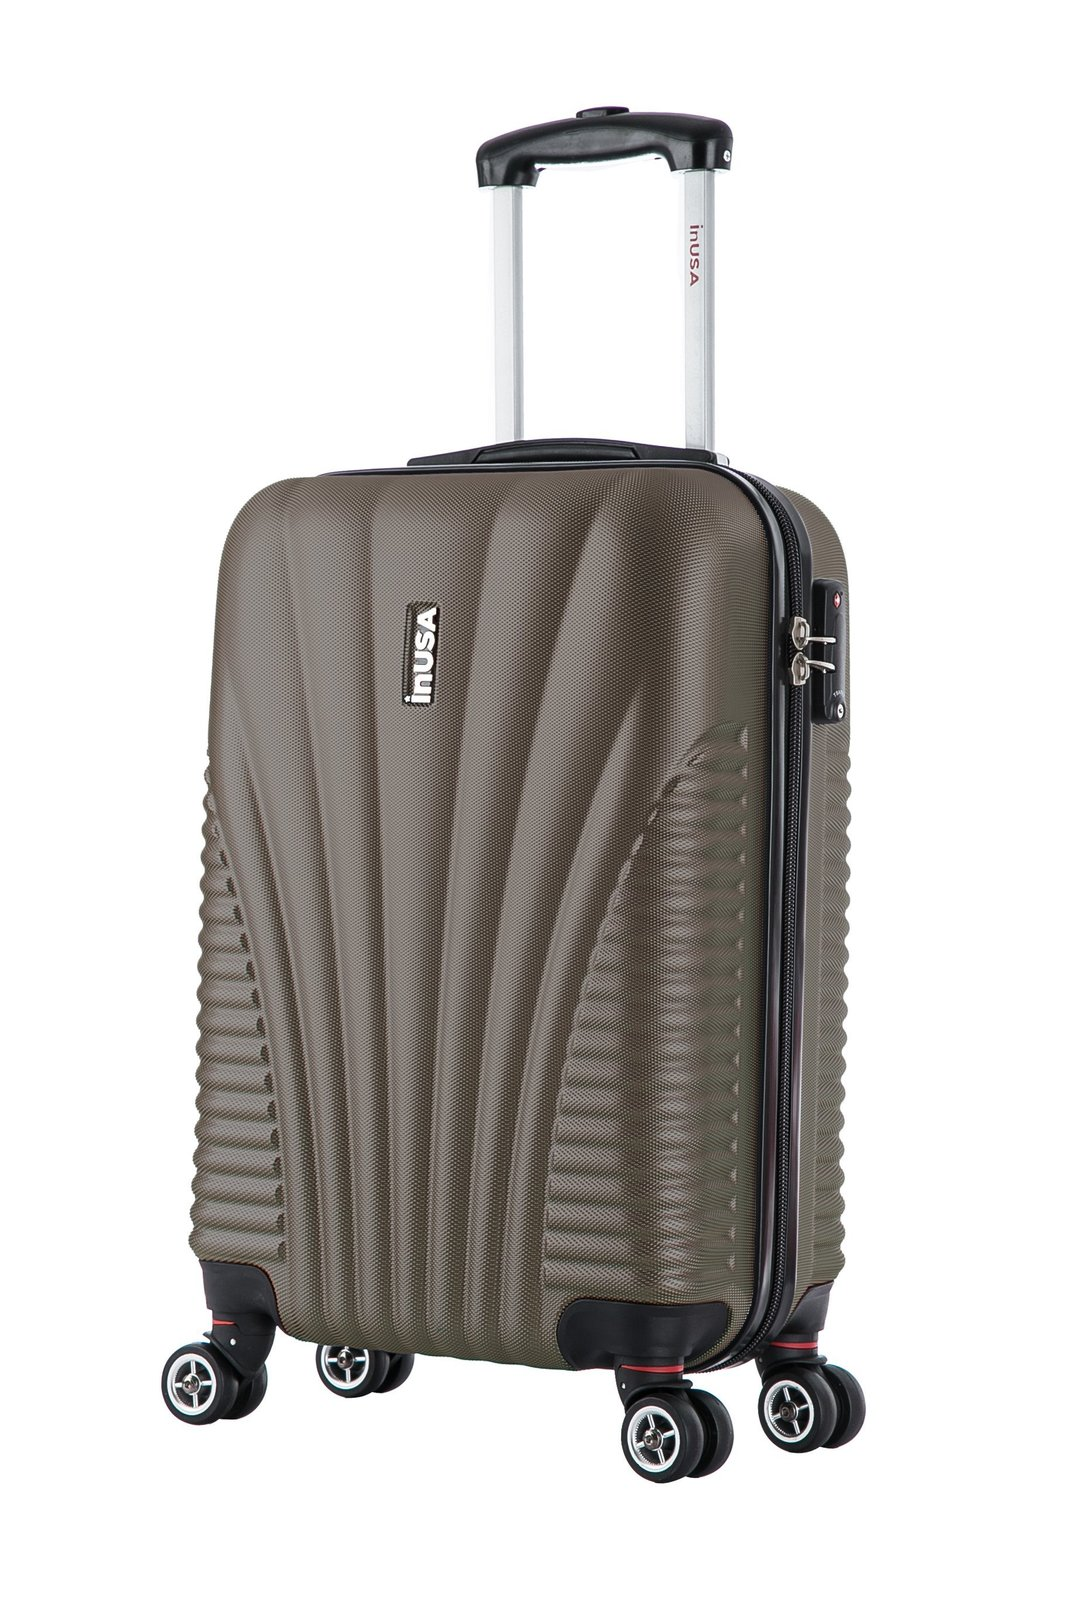 InUSA Chicago 21'' Hardside Carry On